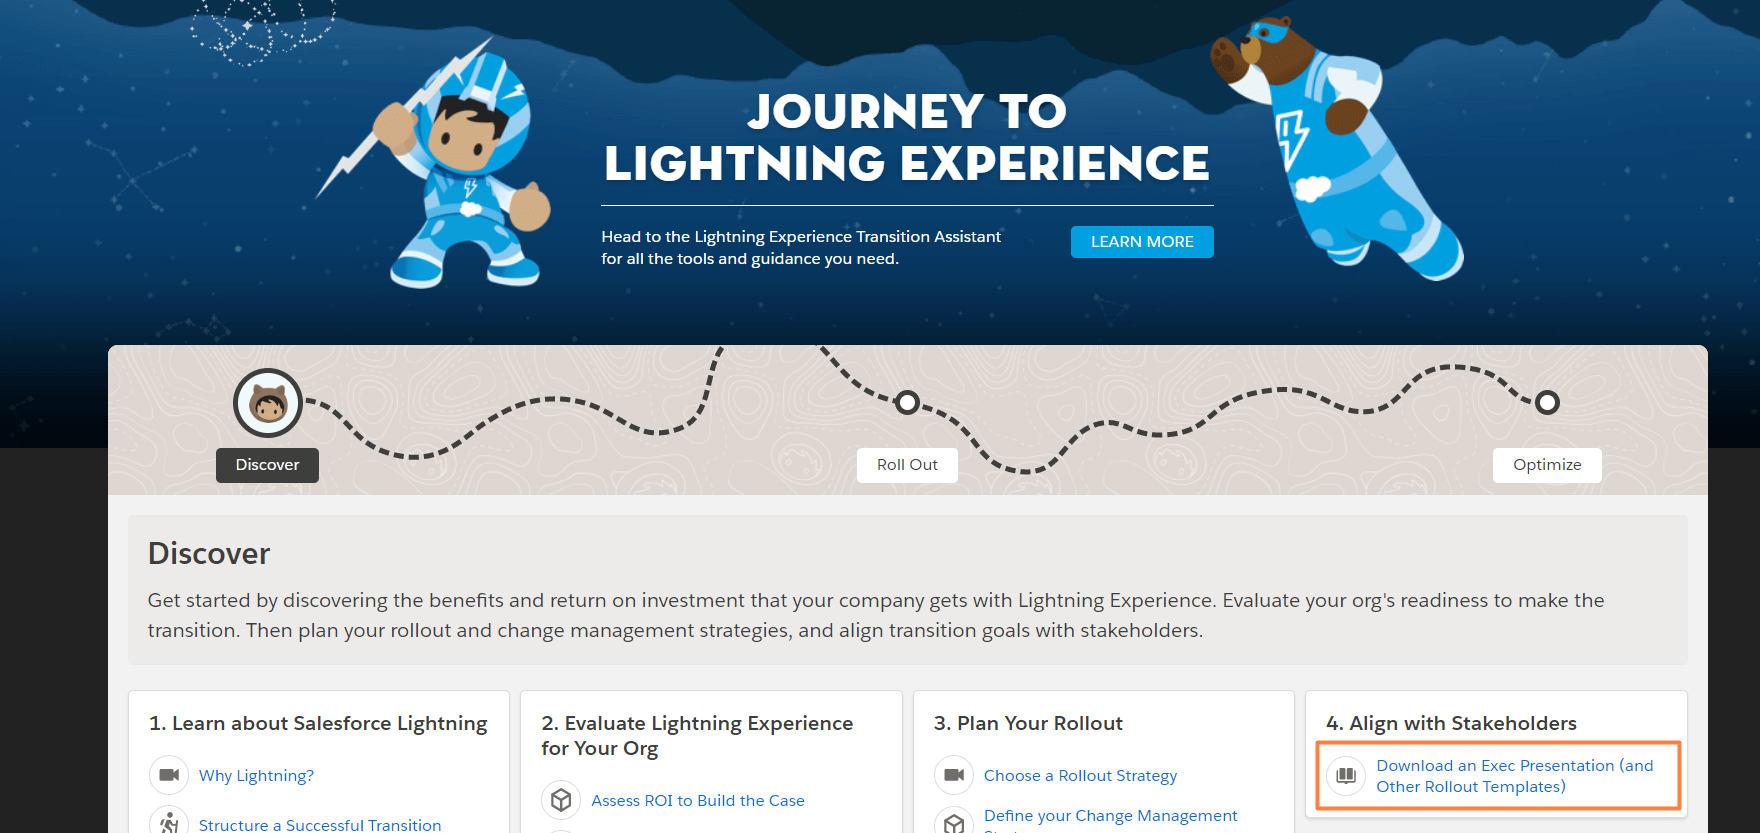 Salesforce-Lightning-Rollout-Templates